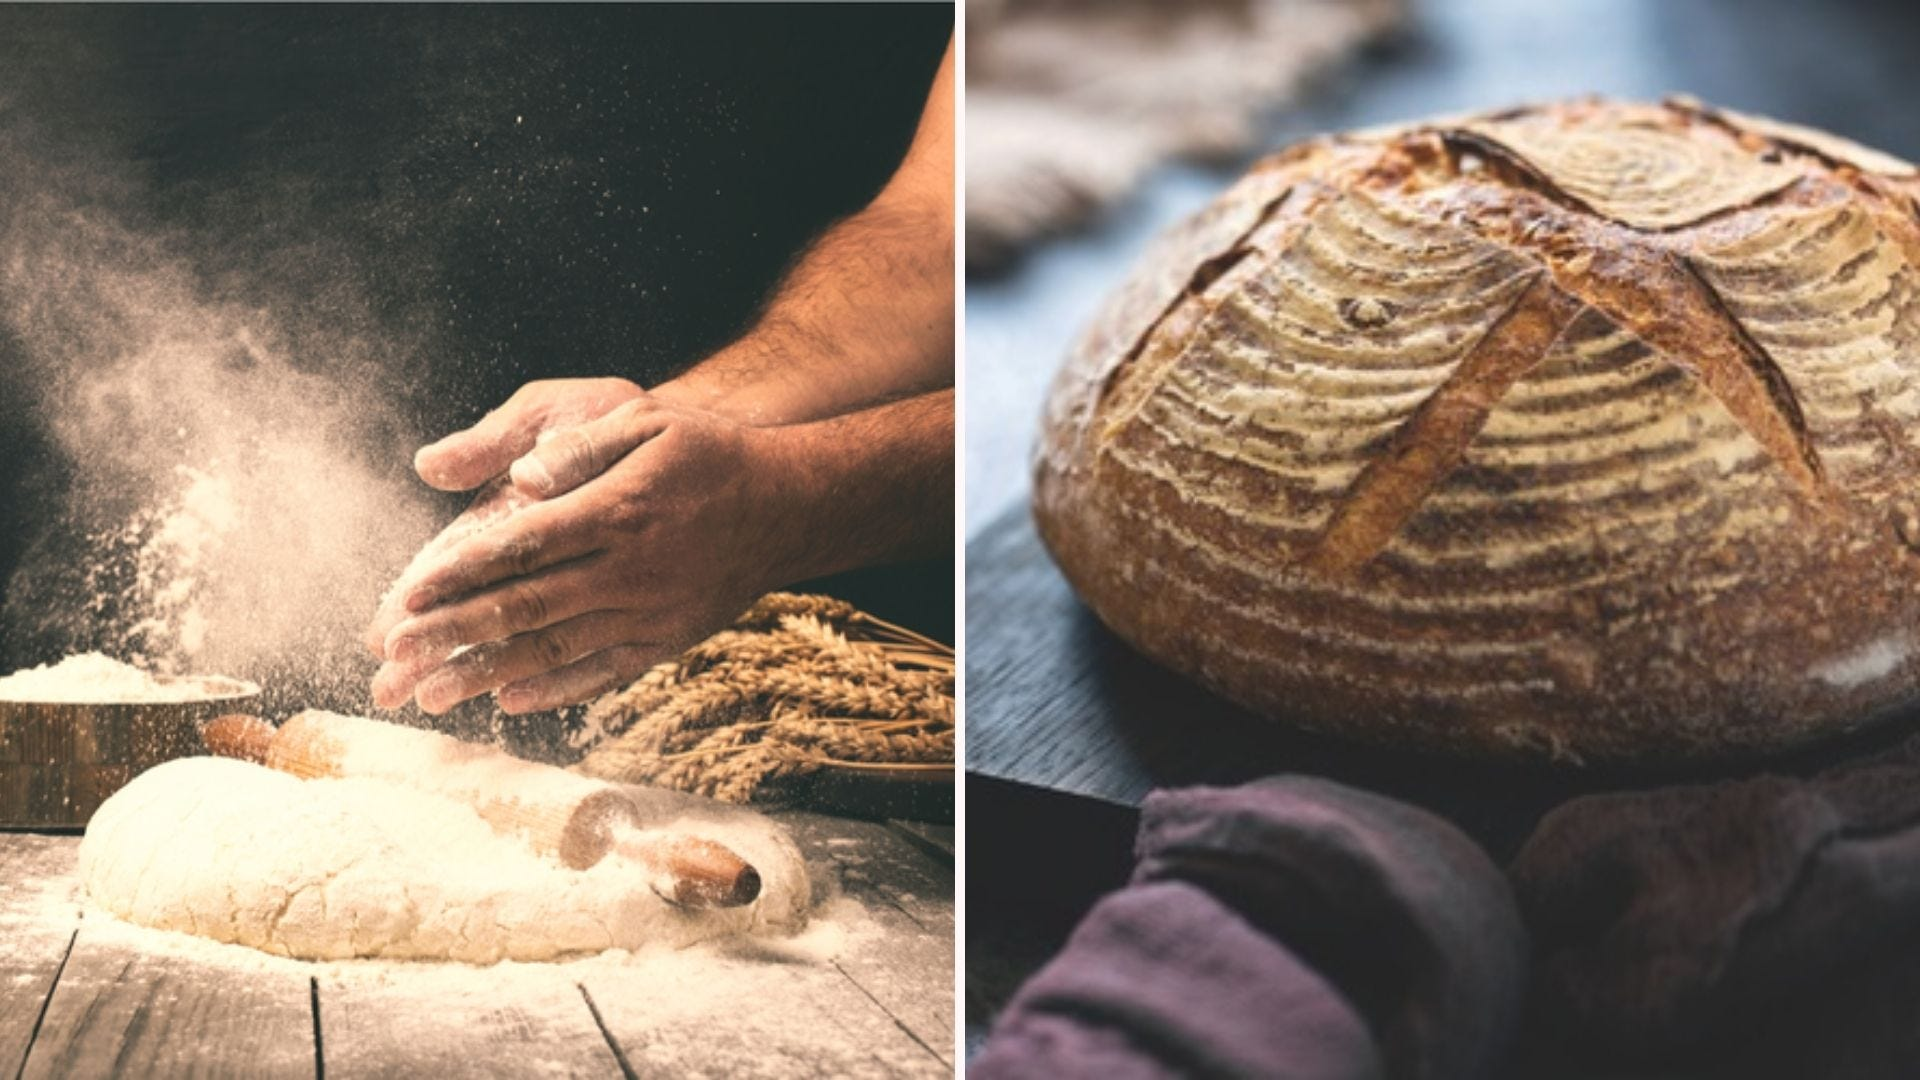 Someone from an Online Baking Academy course clapping their hands to sprinkle flour over fresh dough, and a loaf of scored sourdough.